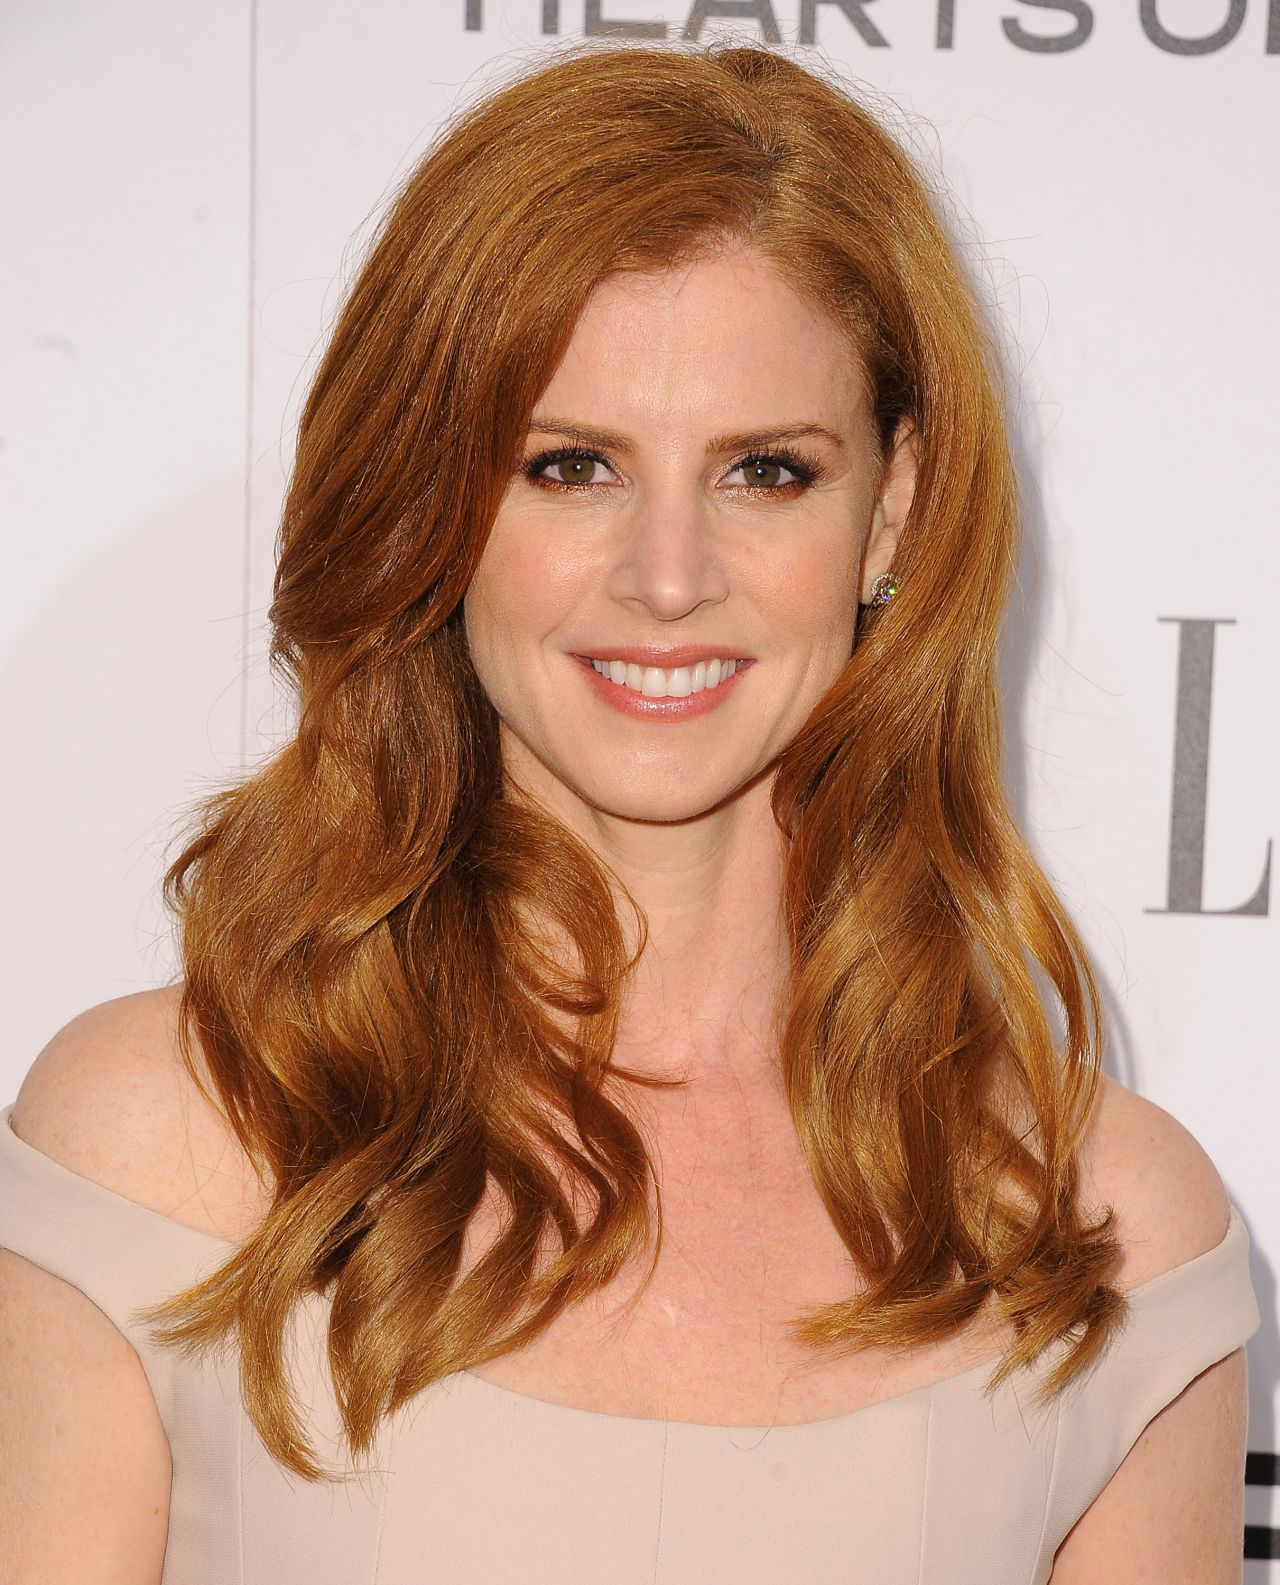 Sarah Rafferty - Elle's Women in Television Event, January 2014